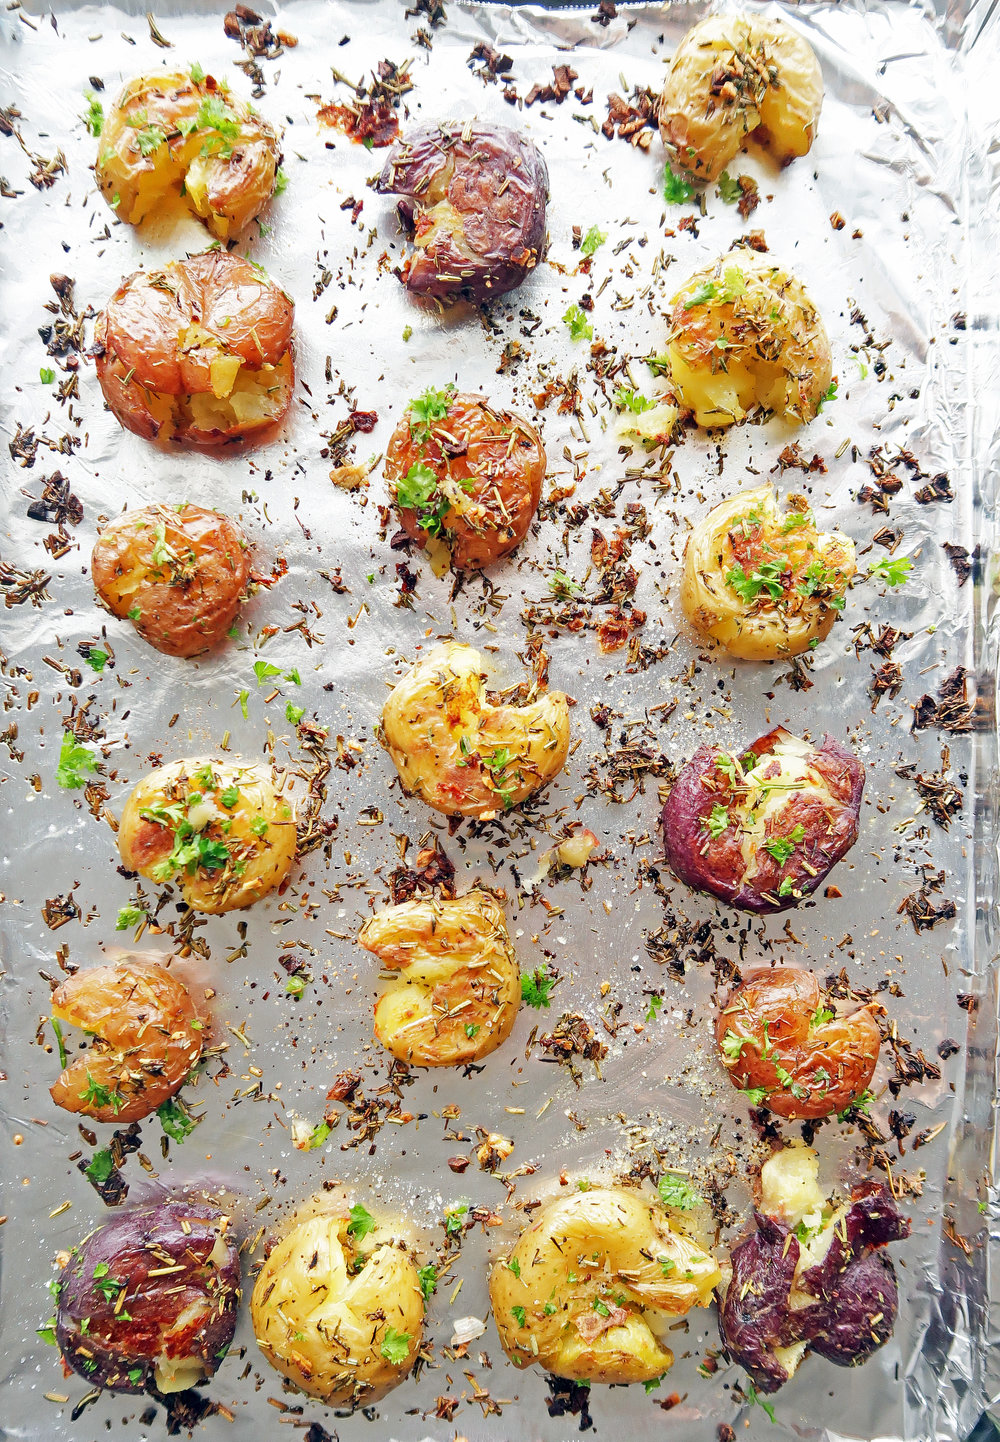 Vegan and gluten-free Crispy Garlic Smashed Baby Potatoes on a baking sheet.